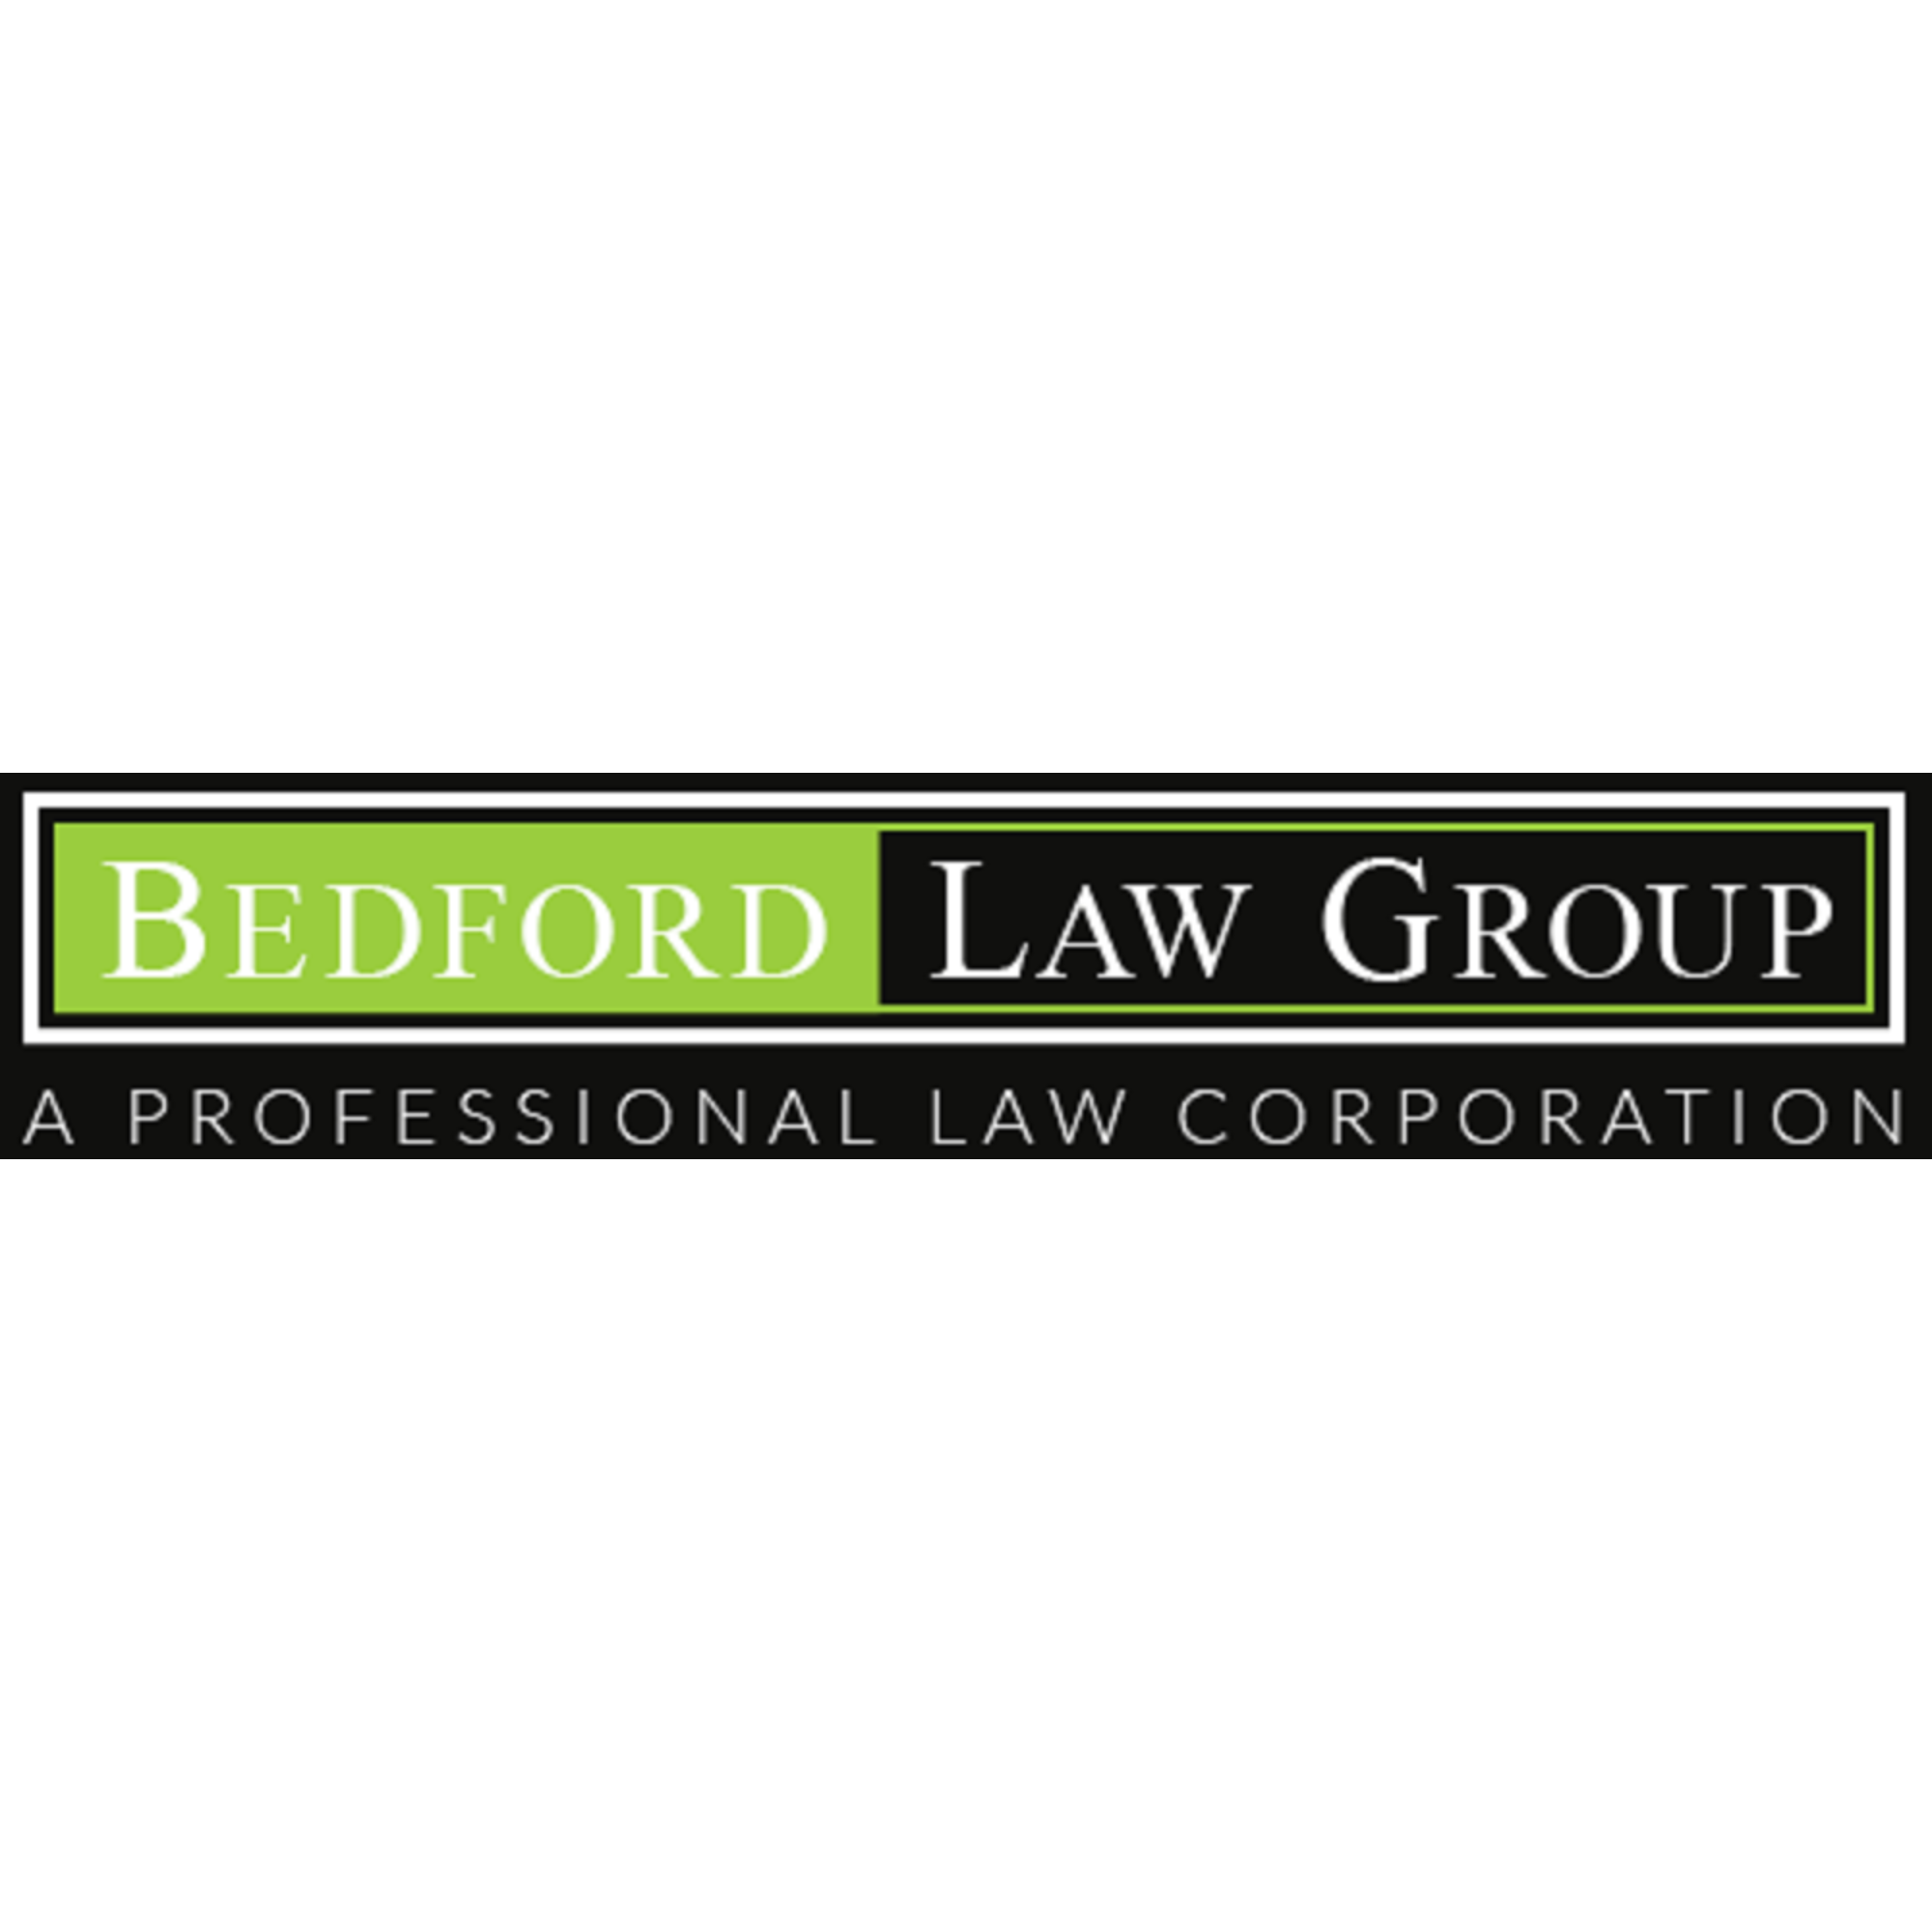 Bedford Law Group, APC